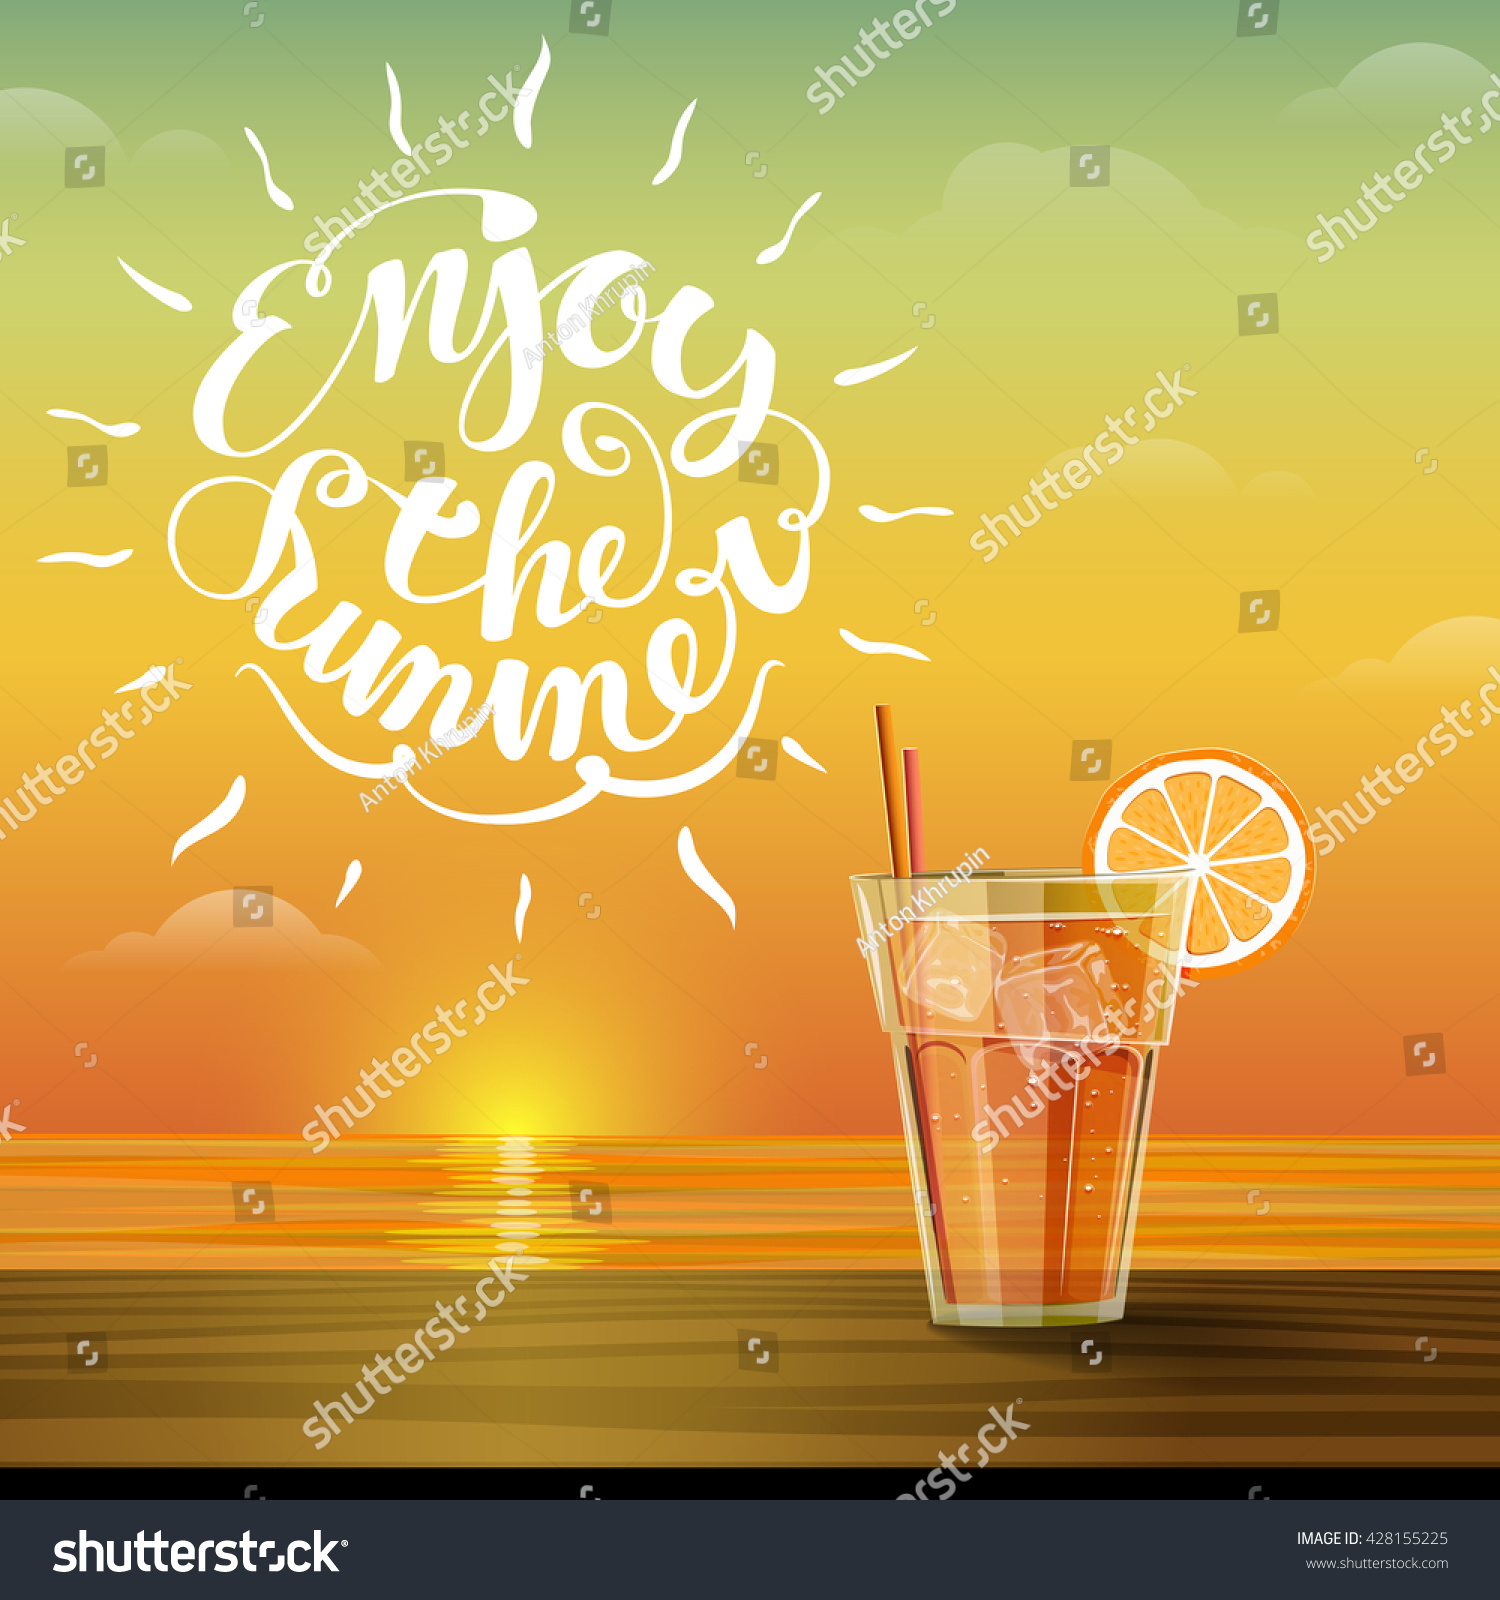 Captivating Summer Glass Of Cold Lemonade At Sunset. Hello Summer. Sky And Sea On The